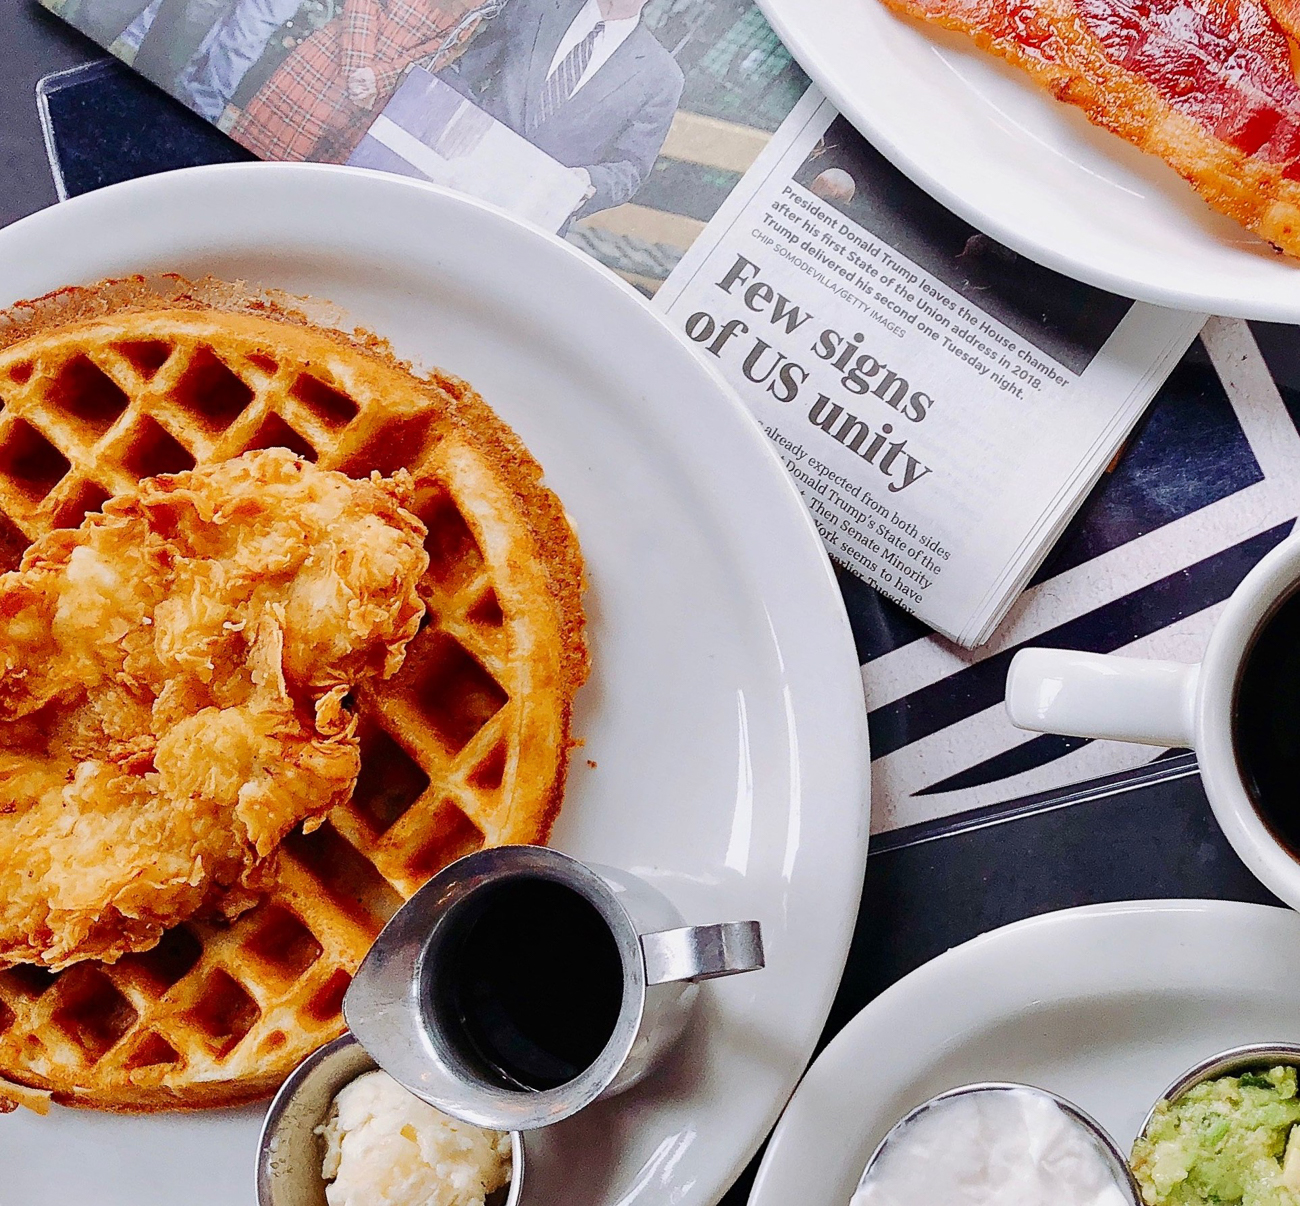 What's a Stranger Things tribute without some Eggos? Conner's Kitchen + Bar is doing fried chicken and waffles for Saturday and Sunday brunch. If it's good enough for Eleven, you'll probably dig it, too. / Image courtesy of Visit Indy // Published: 6.26.19